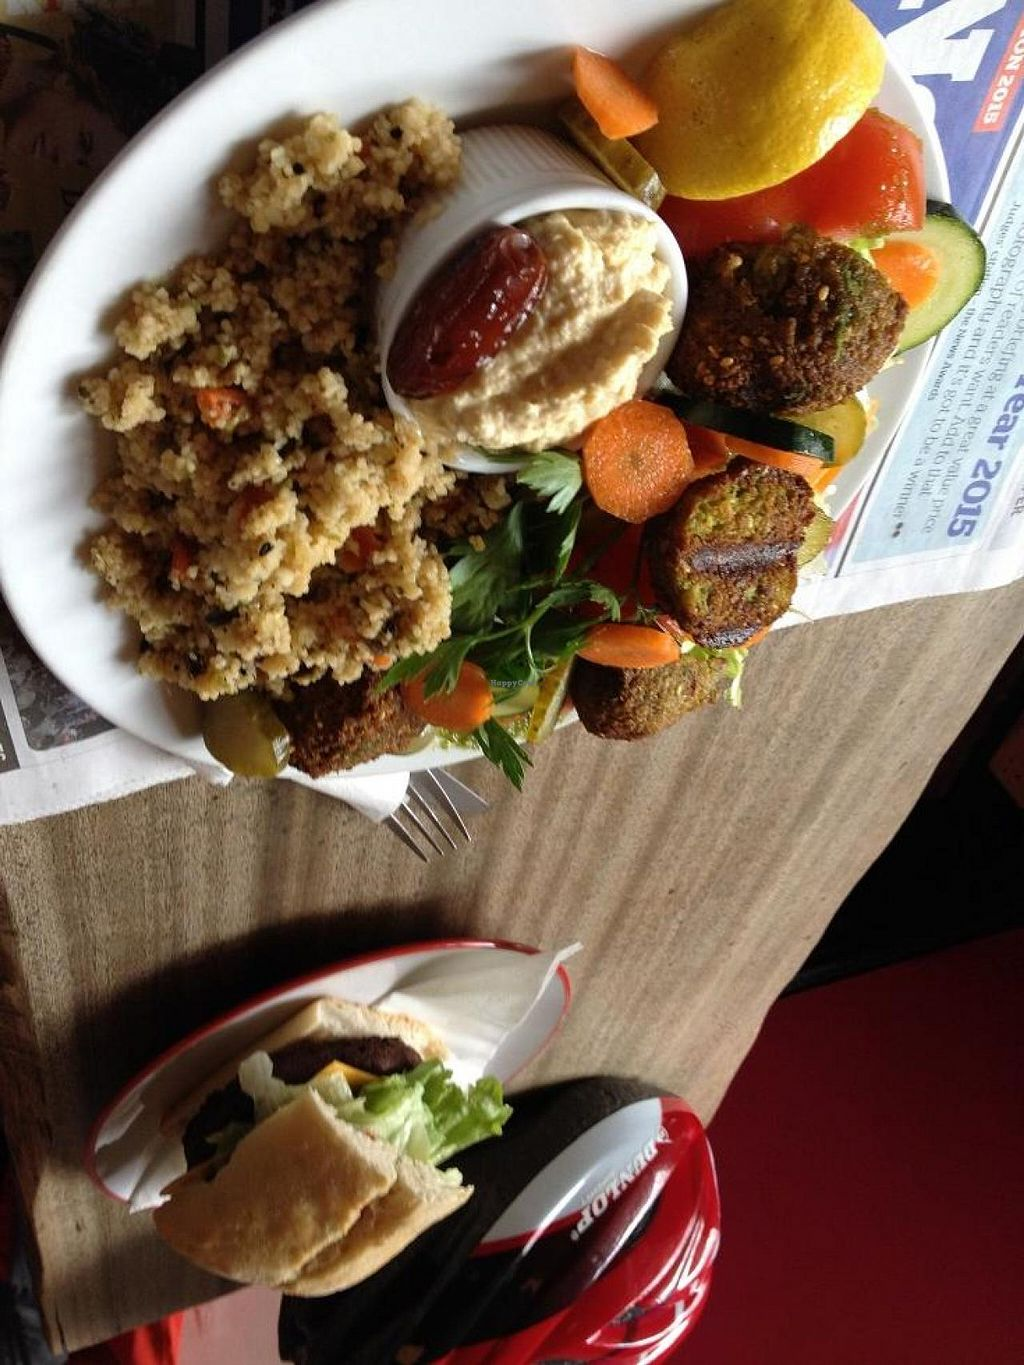 "Photo of CLOSED: CB1 Internet Cafe  by <a href=""/members/profile/chapstick"">chapstick</a> <br/>Two of the recent specials. Vegan delight salad (felafel, hummus, couscous, veggies, olives, pickles, lemon & a date) and vegan cheeze burger. Both excellent.  <br/> May 15, 2015  - <a href='/contact/abuse/image/34488/102294'>Report</a>"